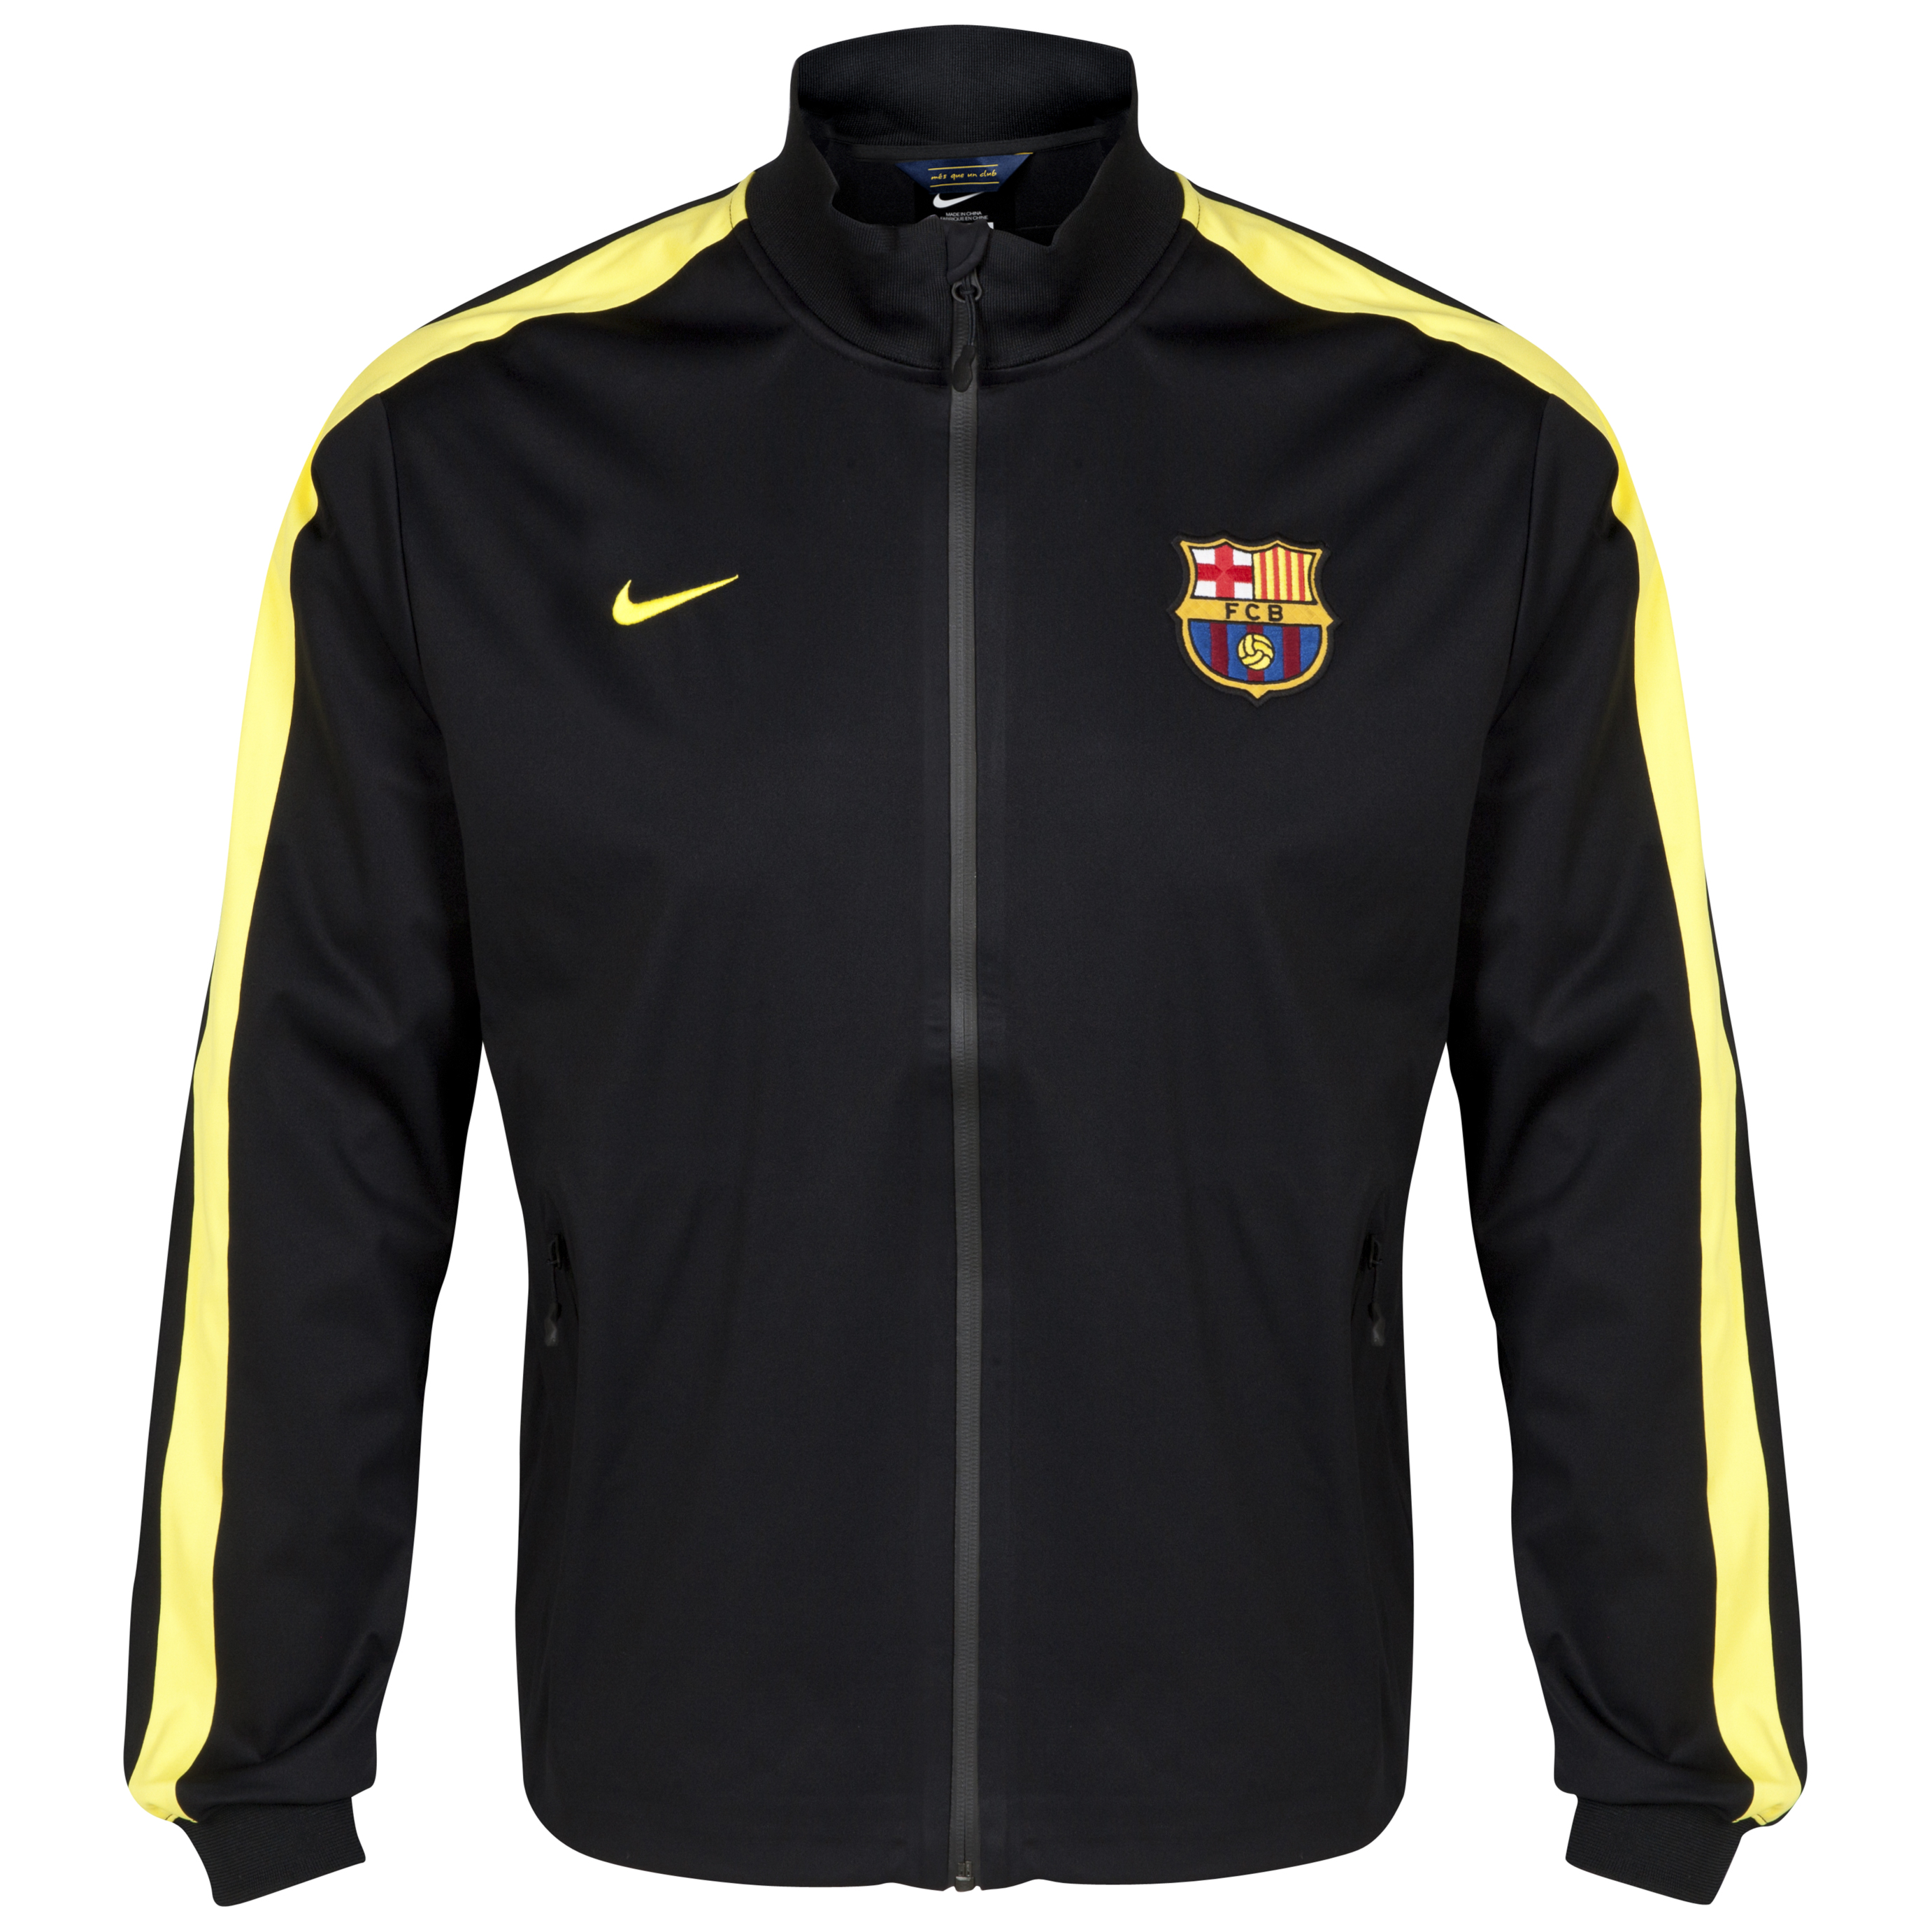 Barcelona Authentic UEFA Champions League N98 Jacket - Black/Vibrant Yellow Black